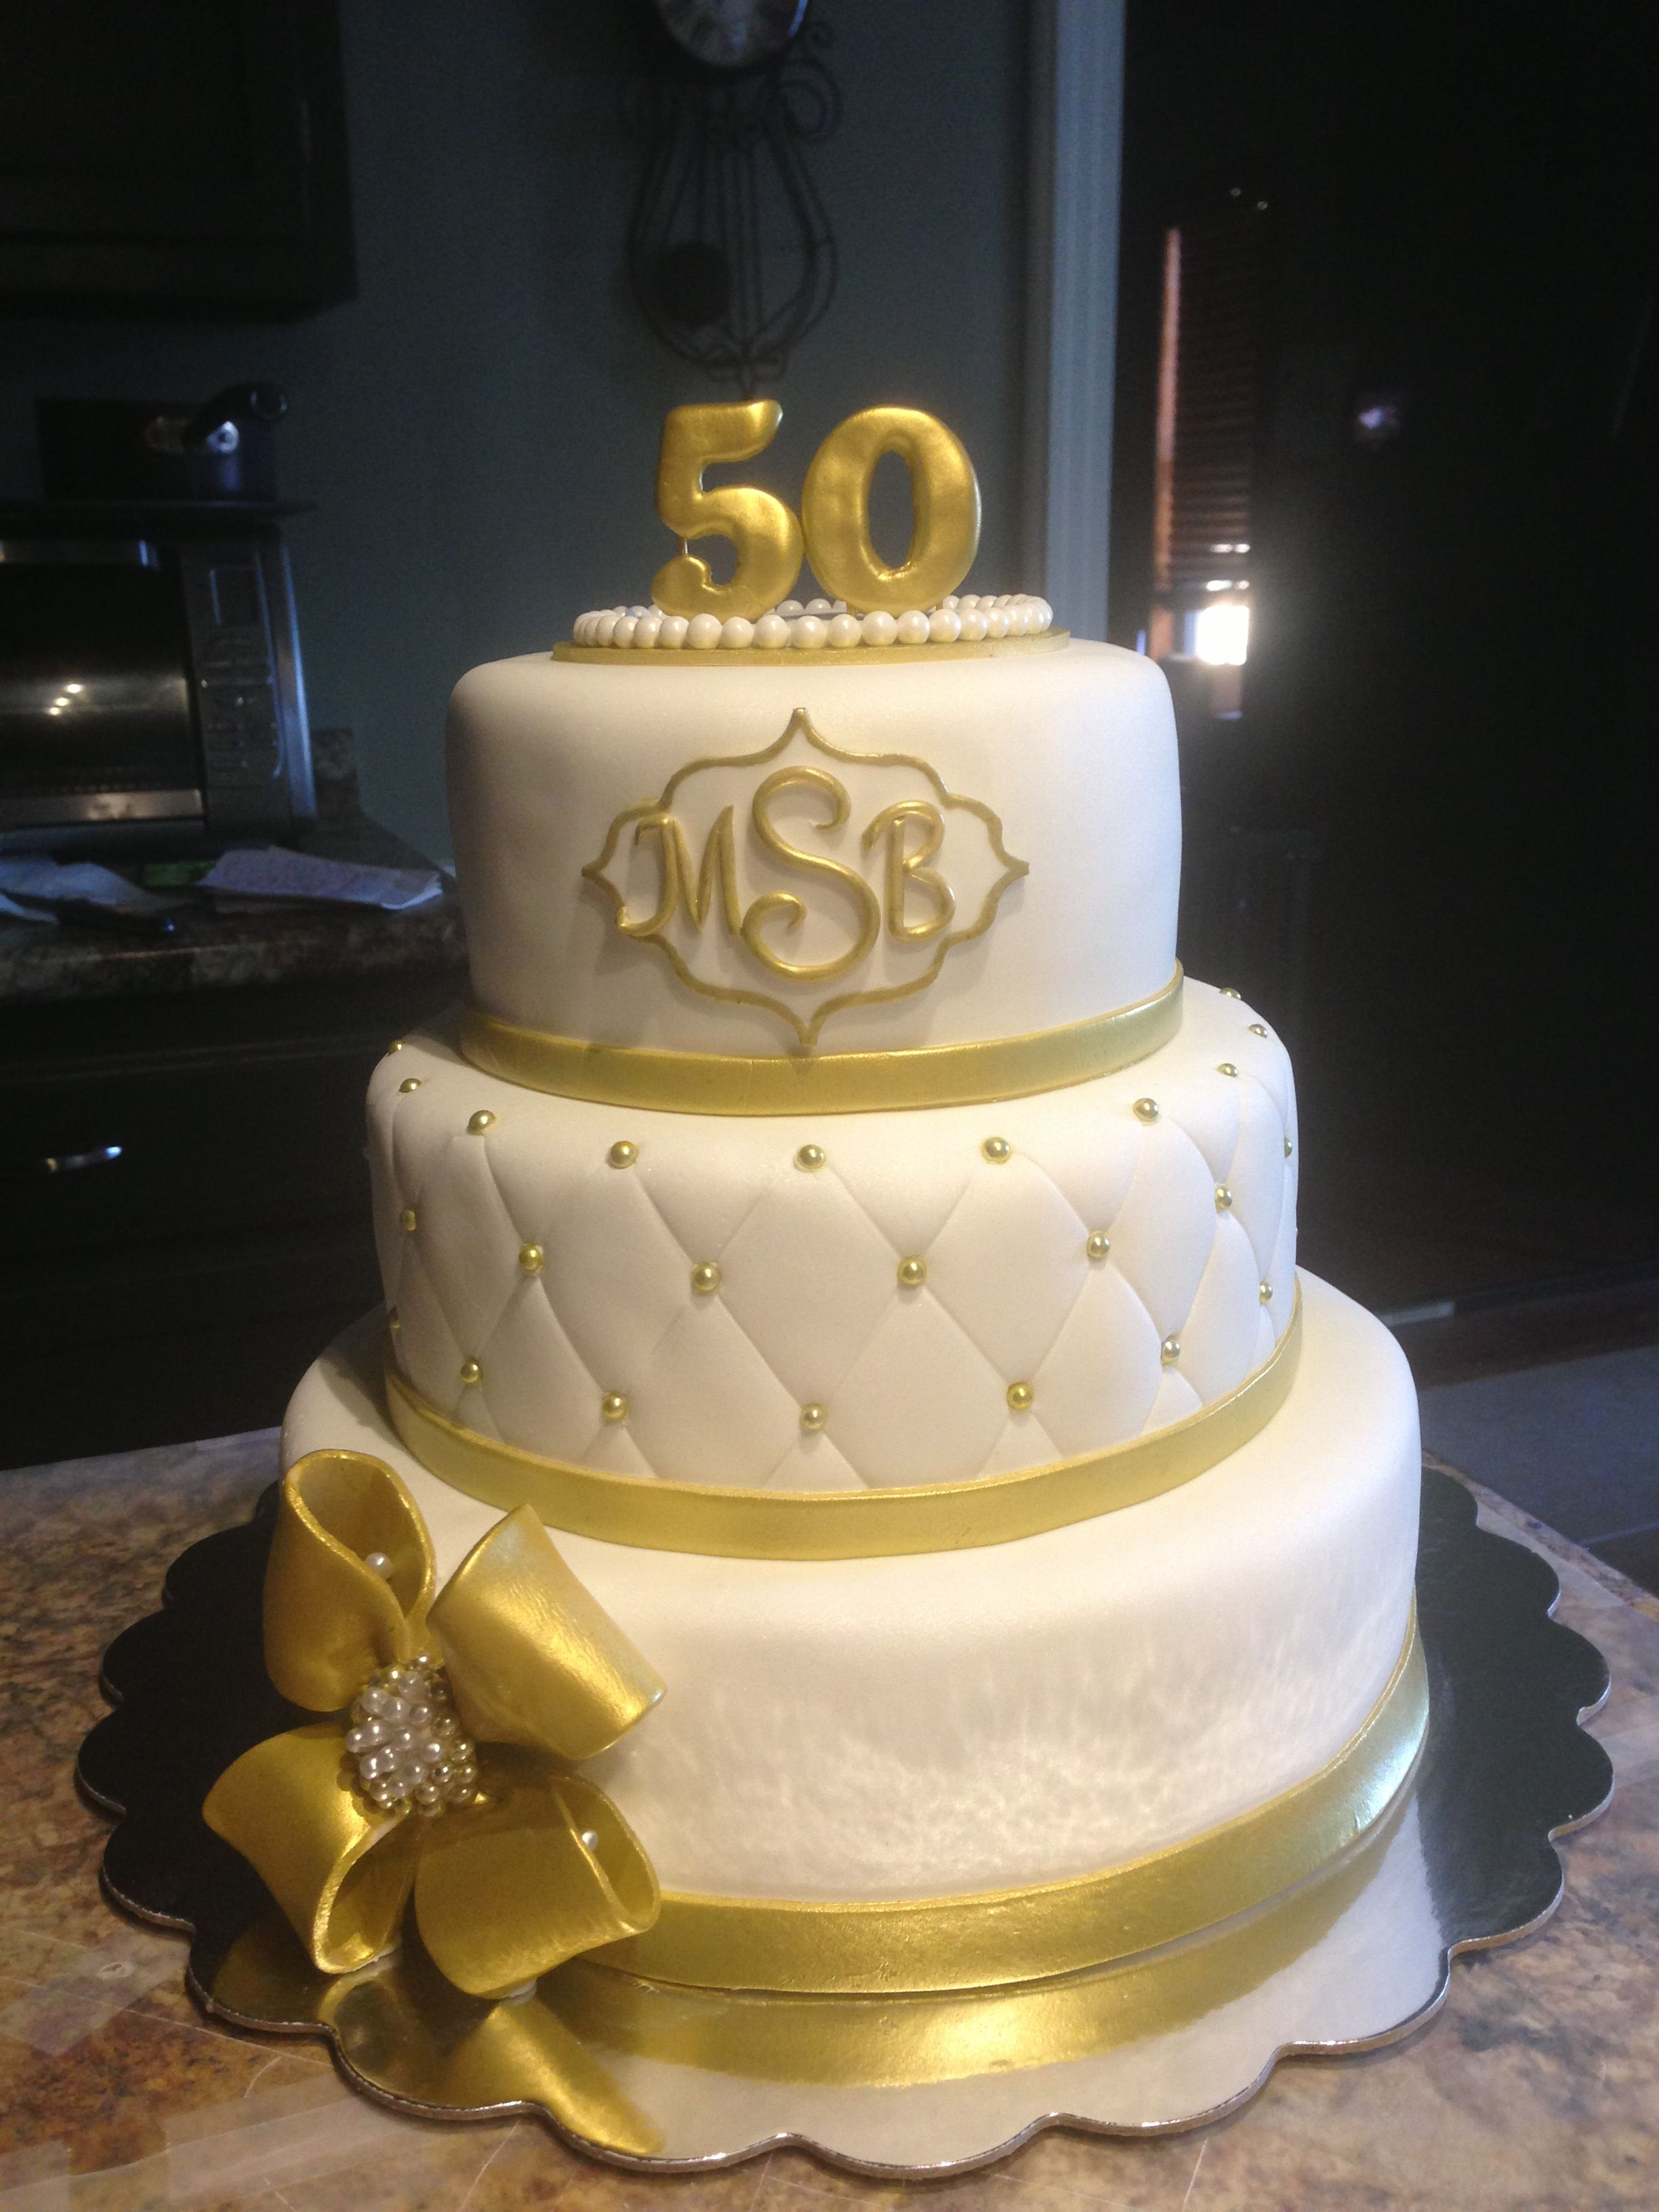 50th Wedding Anniversary Cake I Made Mallory Gray 50 Cakes Of